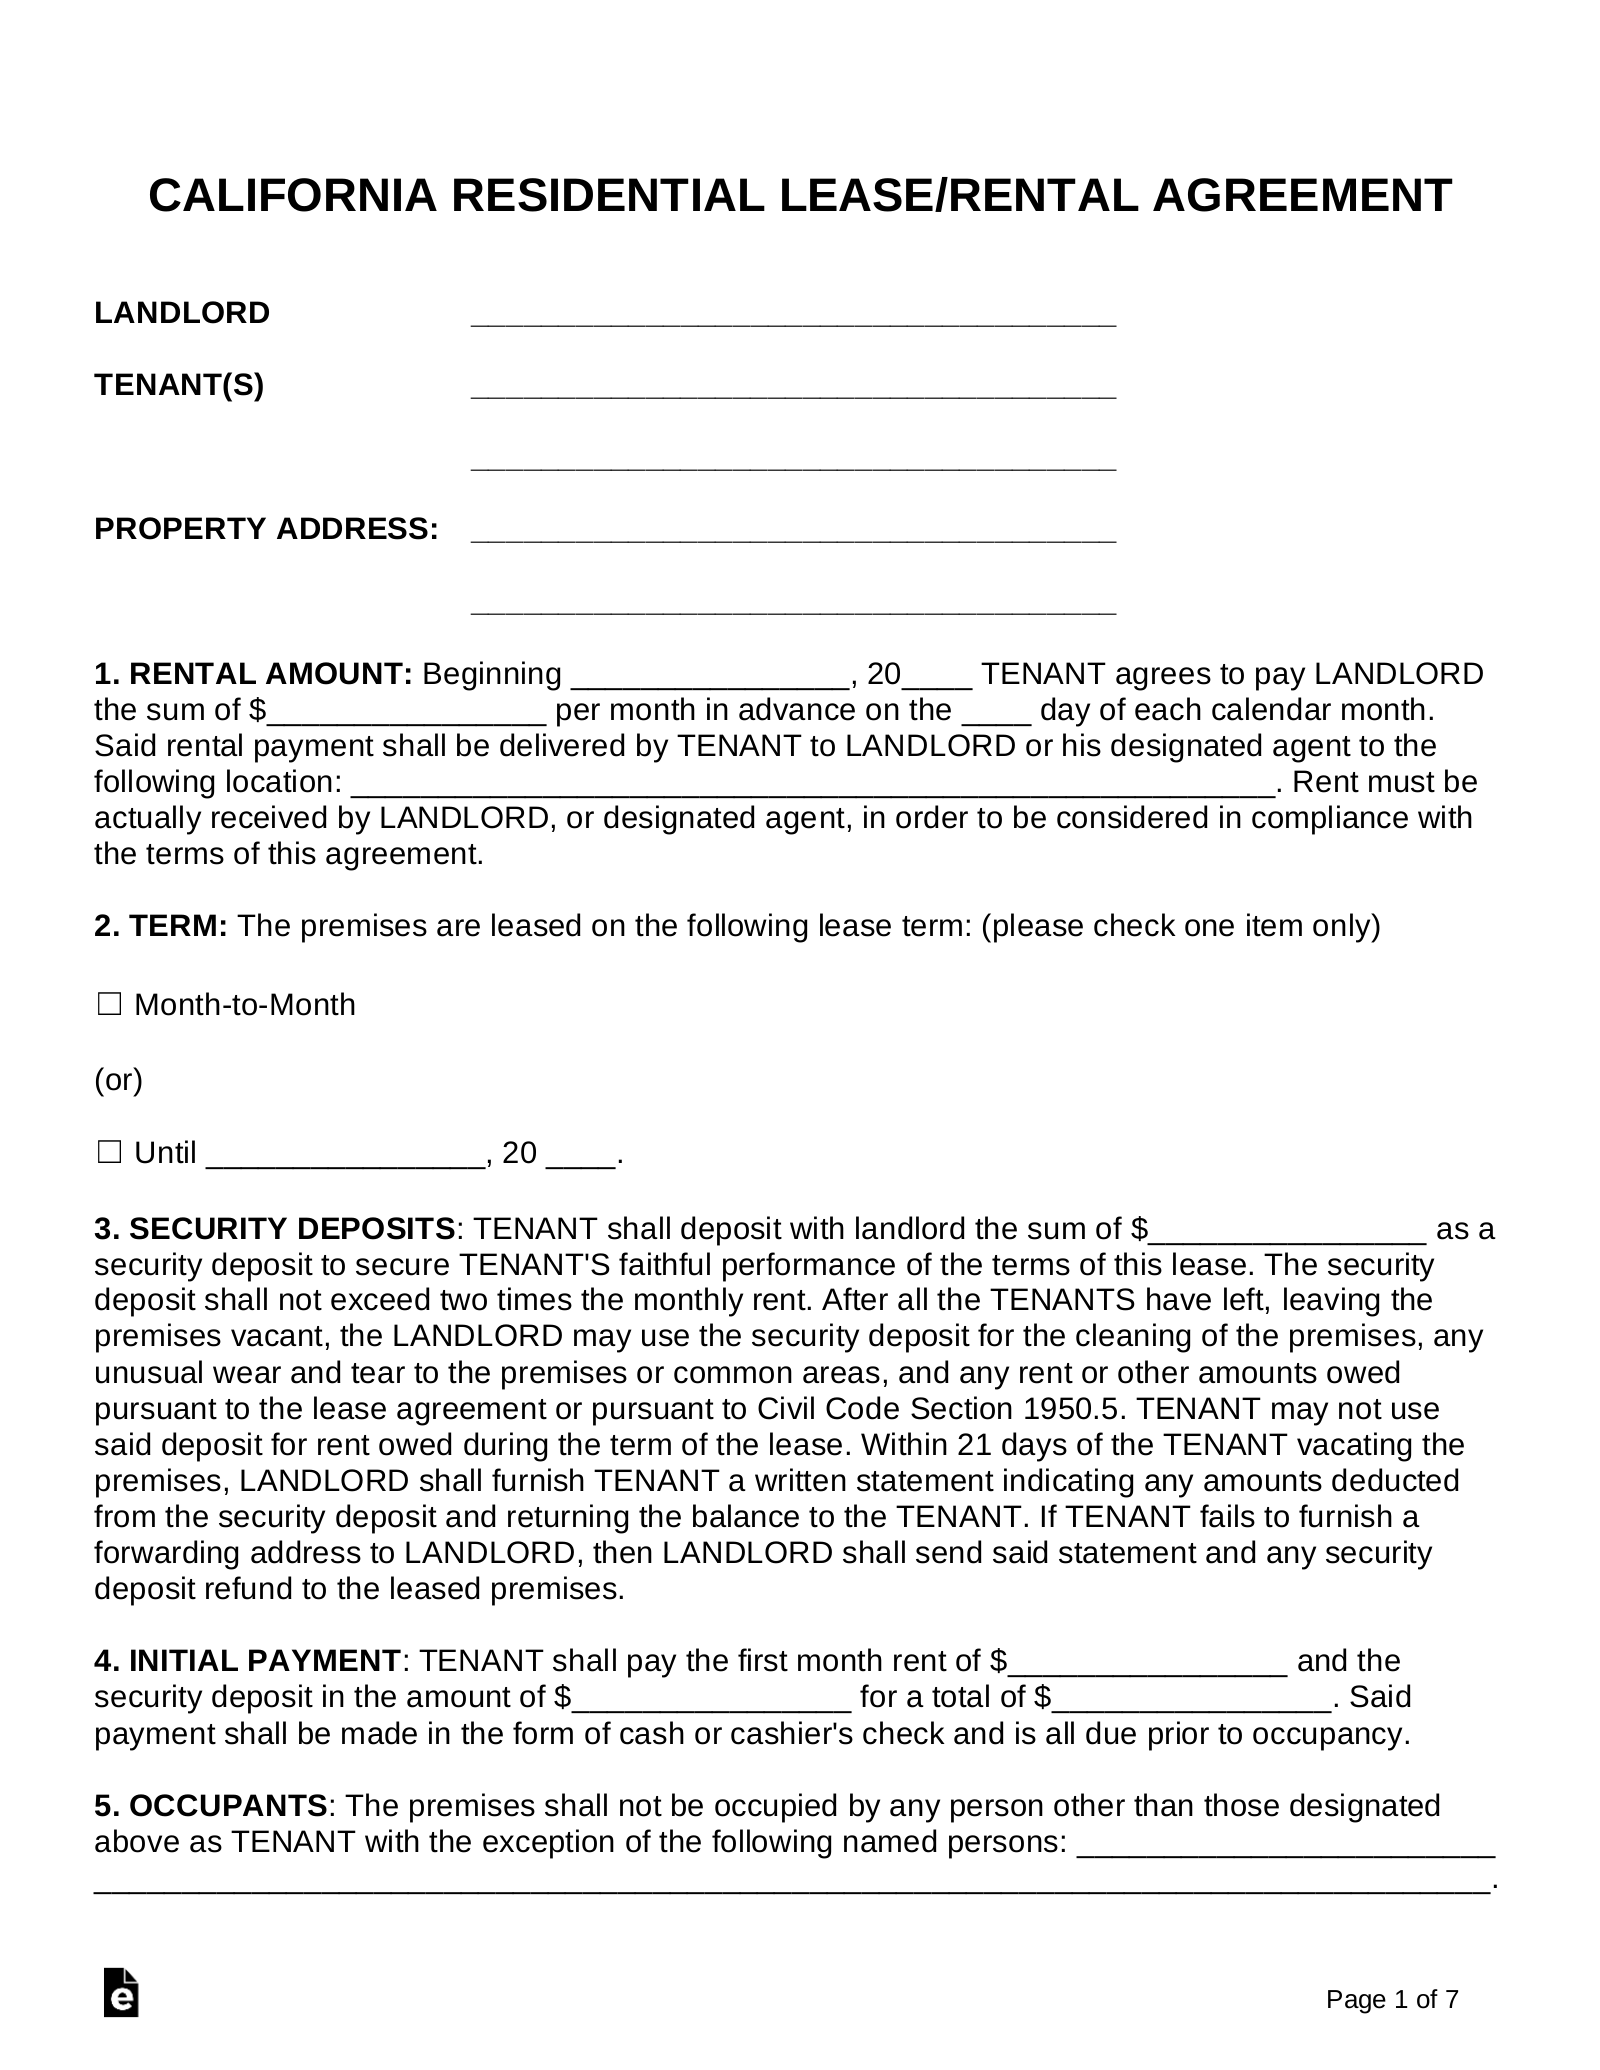 Free California Standard Residential Lease Agreement